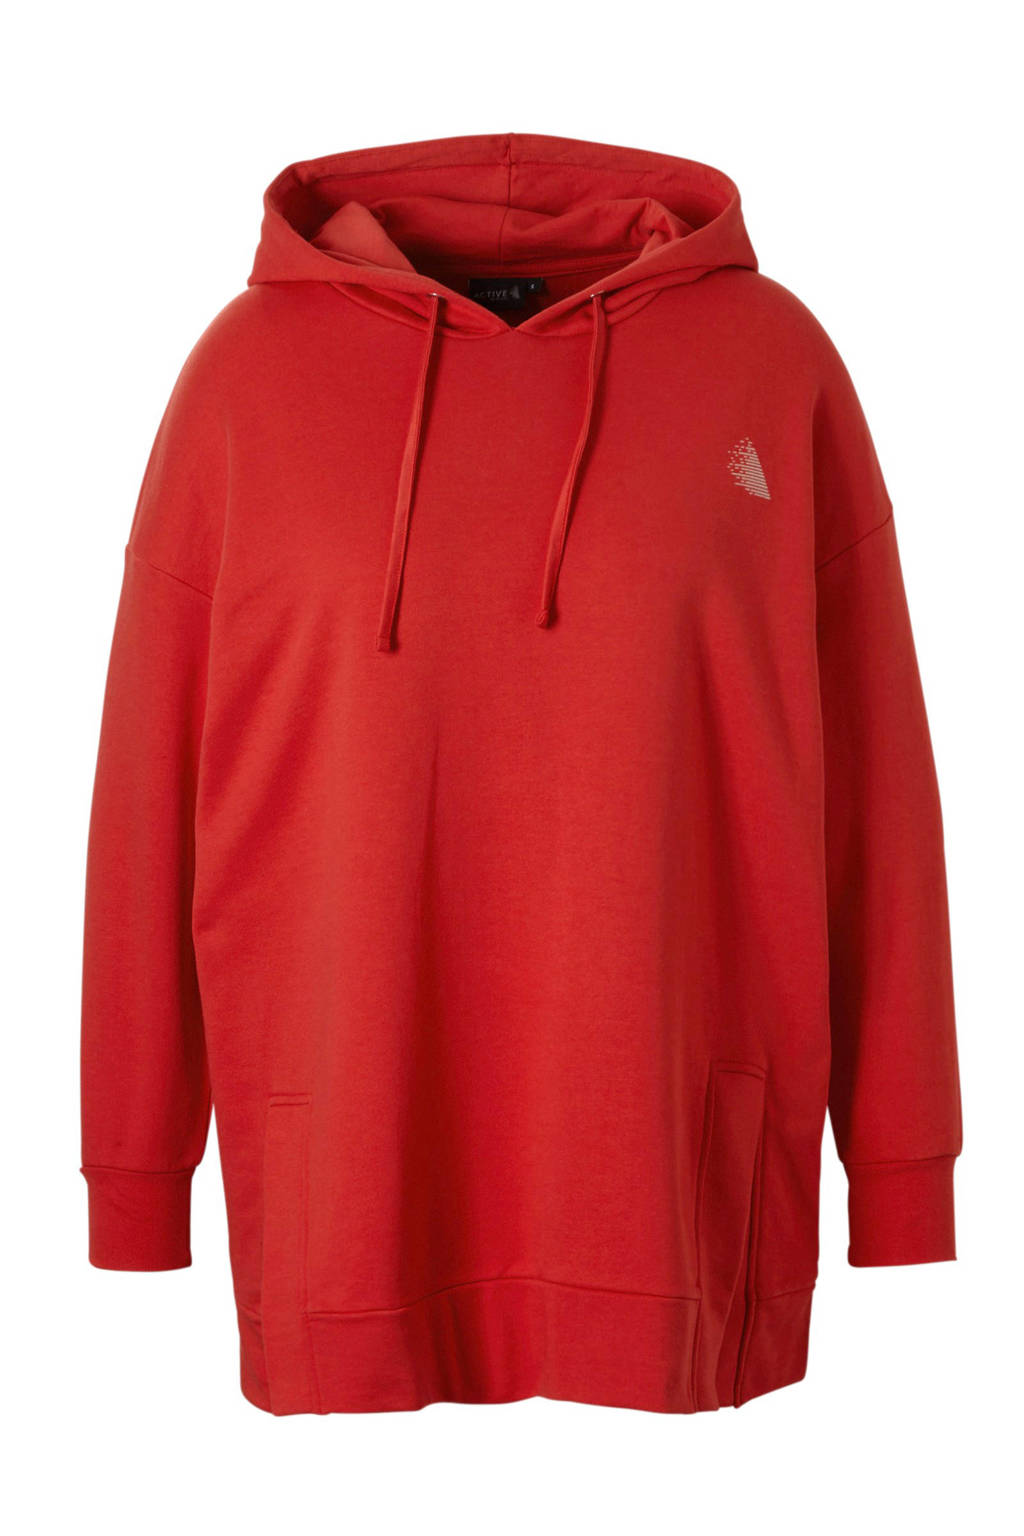 ACTIVE By Zizzi sporthoodie rood, Rood